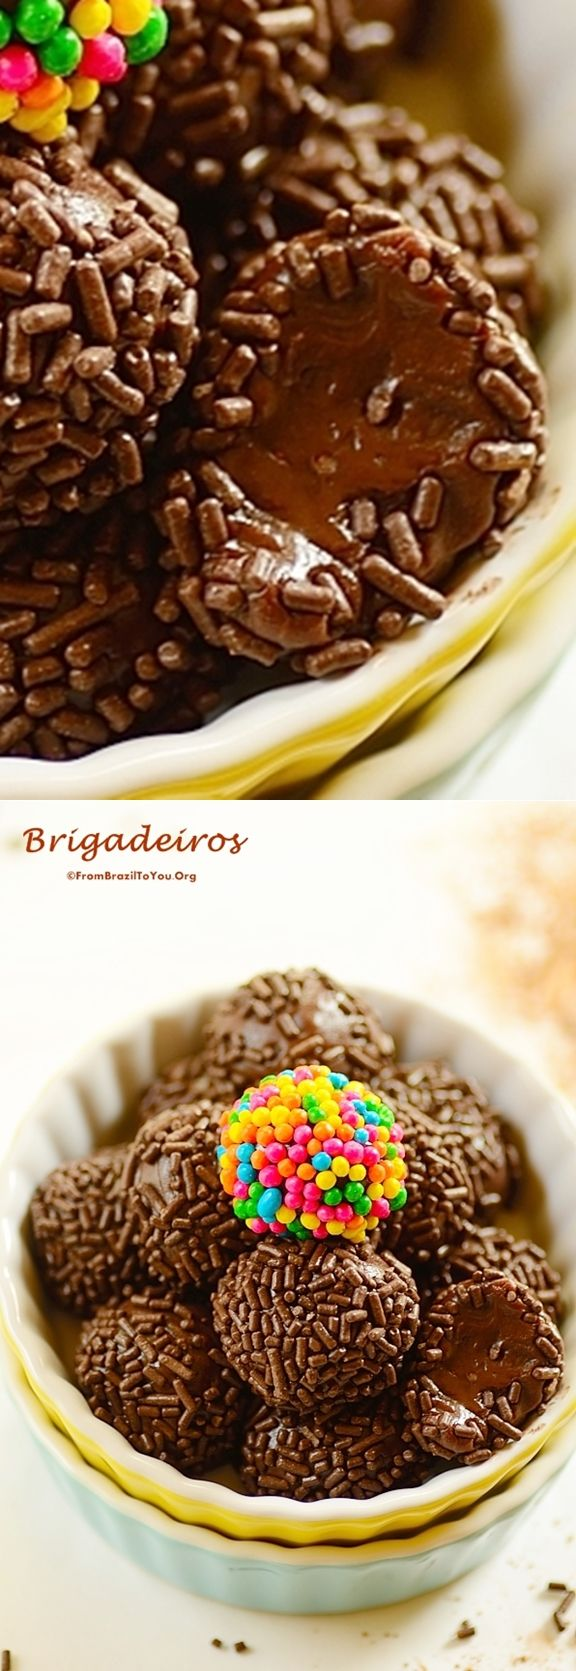 Brigadeiros (prepared either in the MICROWAVE or on the STOVETOP) -- Brazil's famous chocolate fudge balls...1 (14-ounce) can of sweetened condensed milk ¼ cup baking cocoa powder 2 Tbsp unsalted butter (softened) plus extra to grease plate and hands 1 Tbsp pure vanilla extract Chocolate vermicelli or good quality chocolate sprinkles